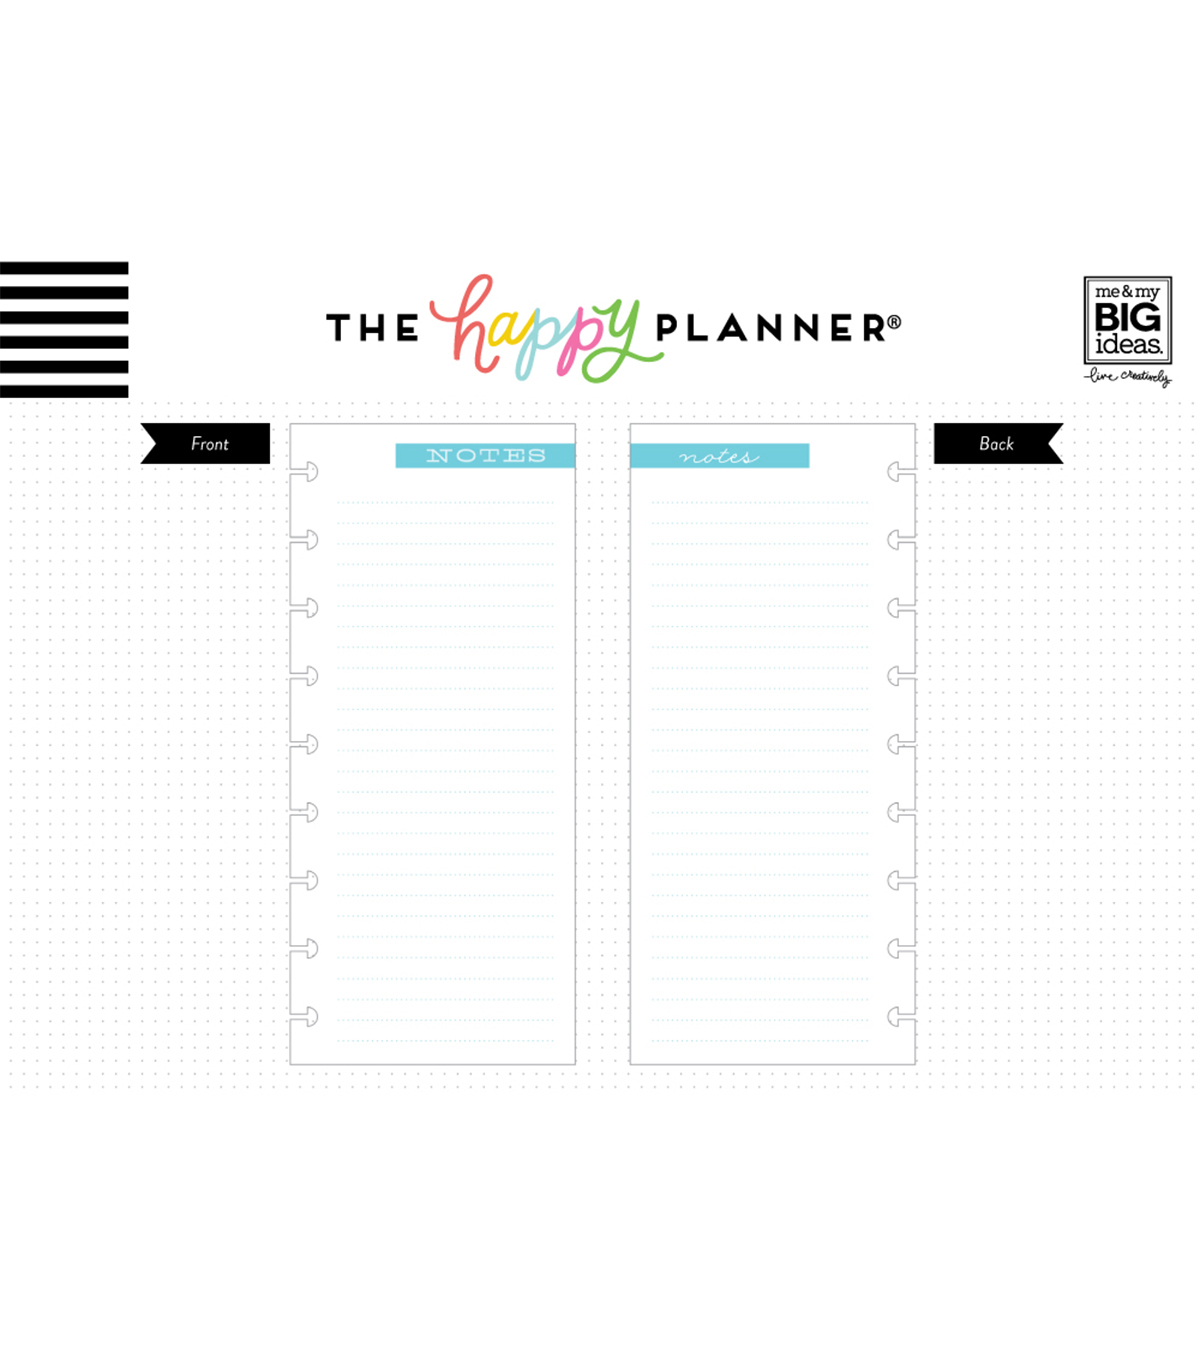 The Happy Planner Paper